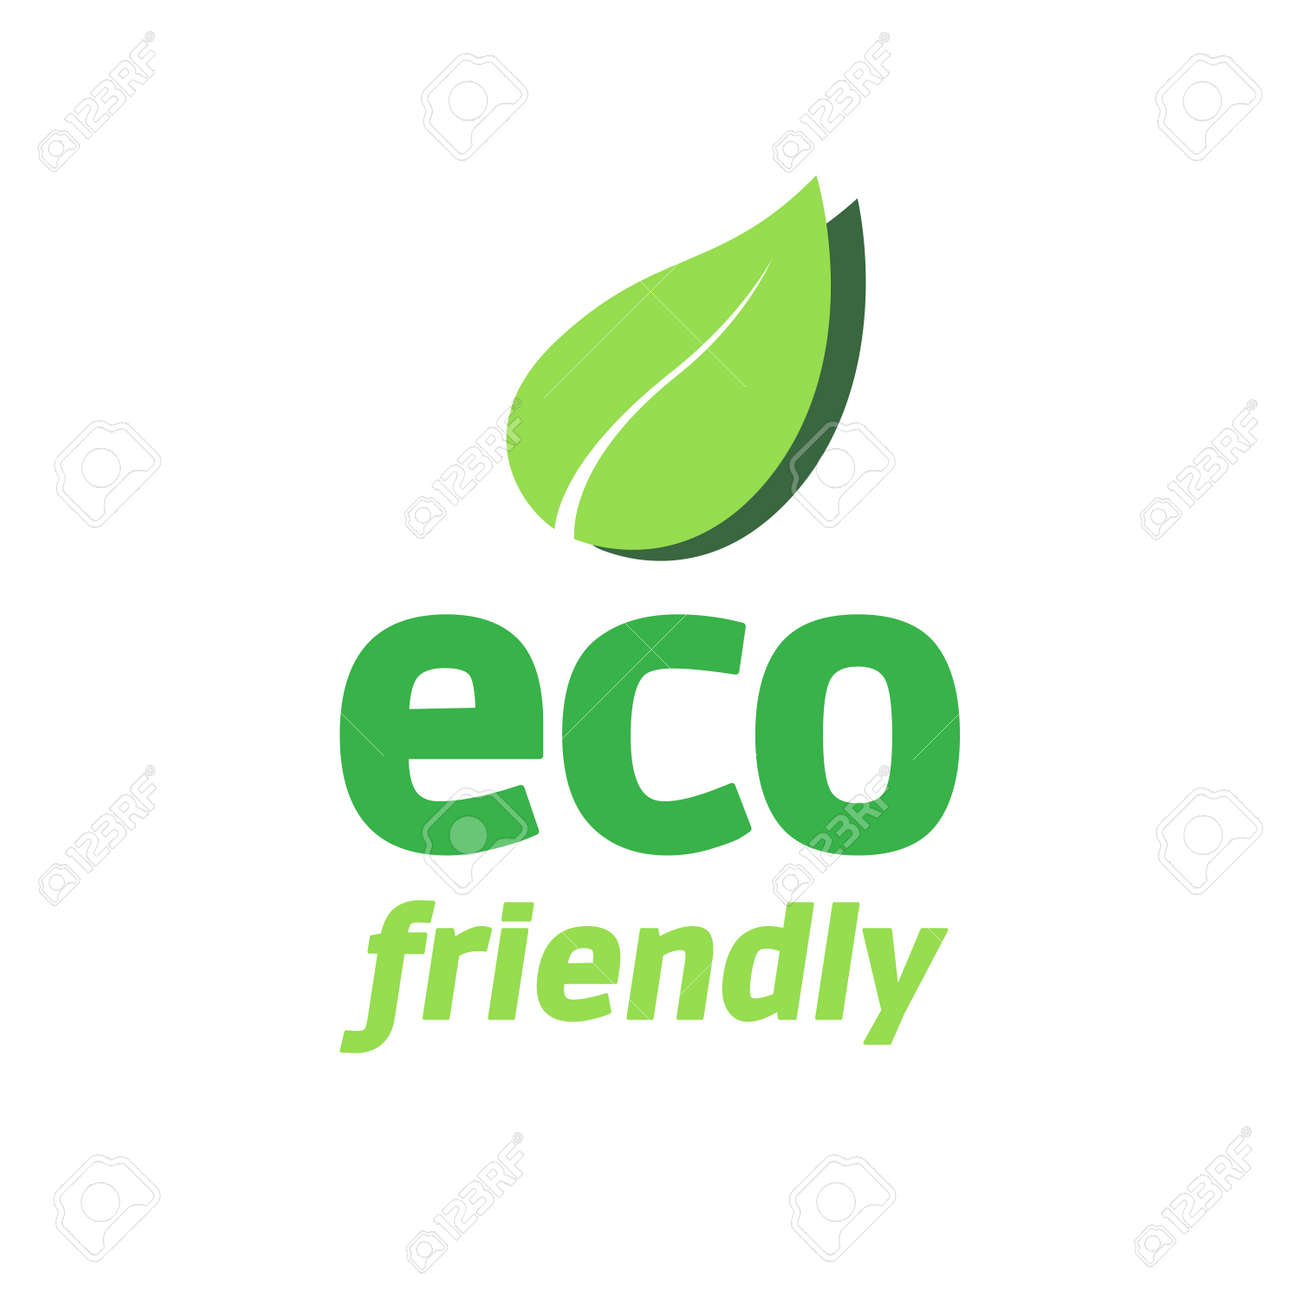 eco friendly logo royalty free cliparts vectors and stock